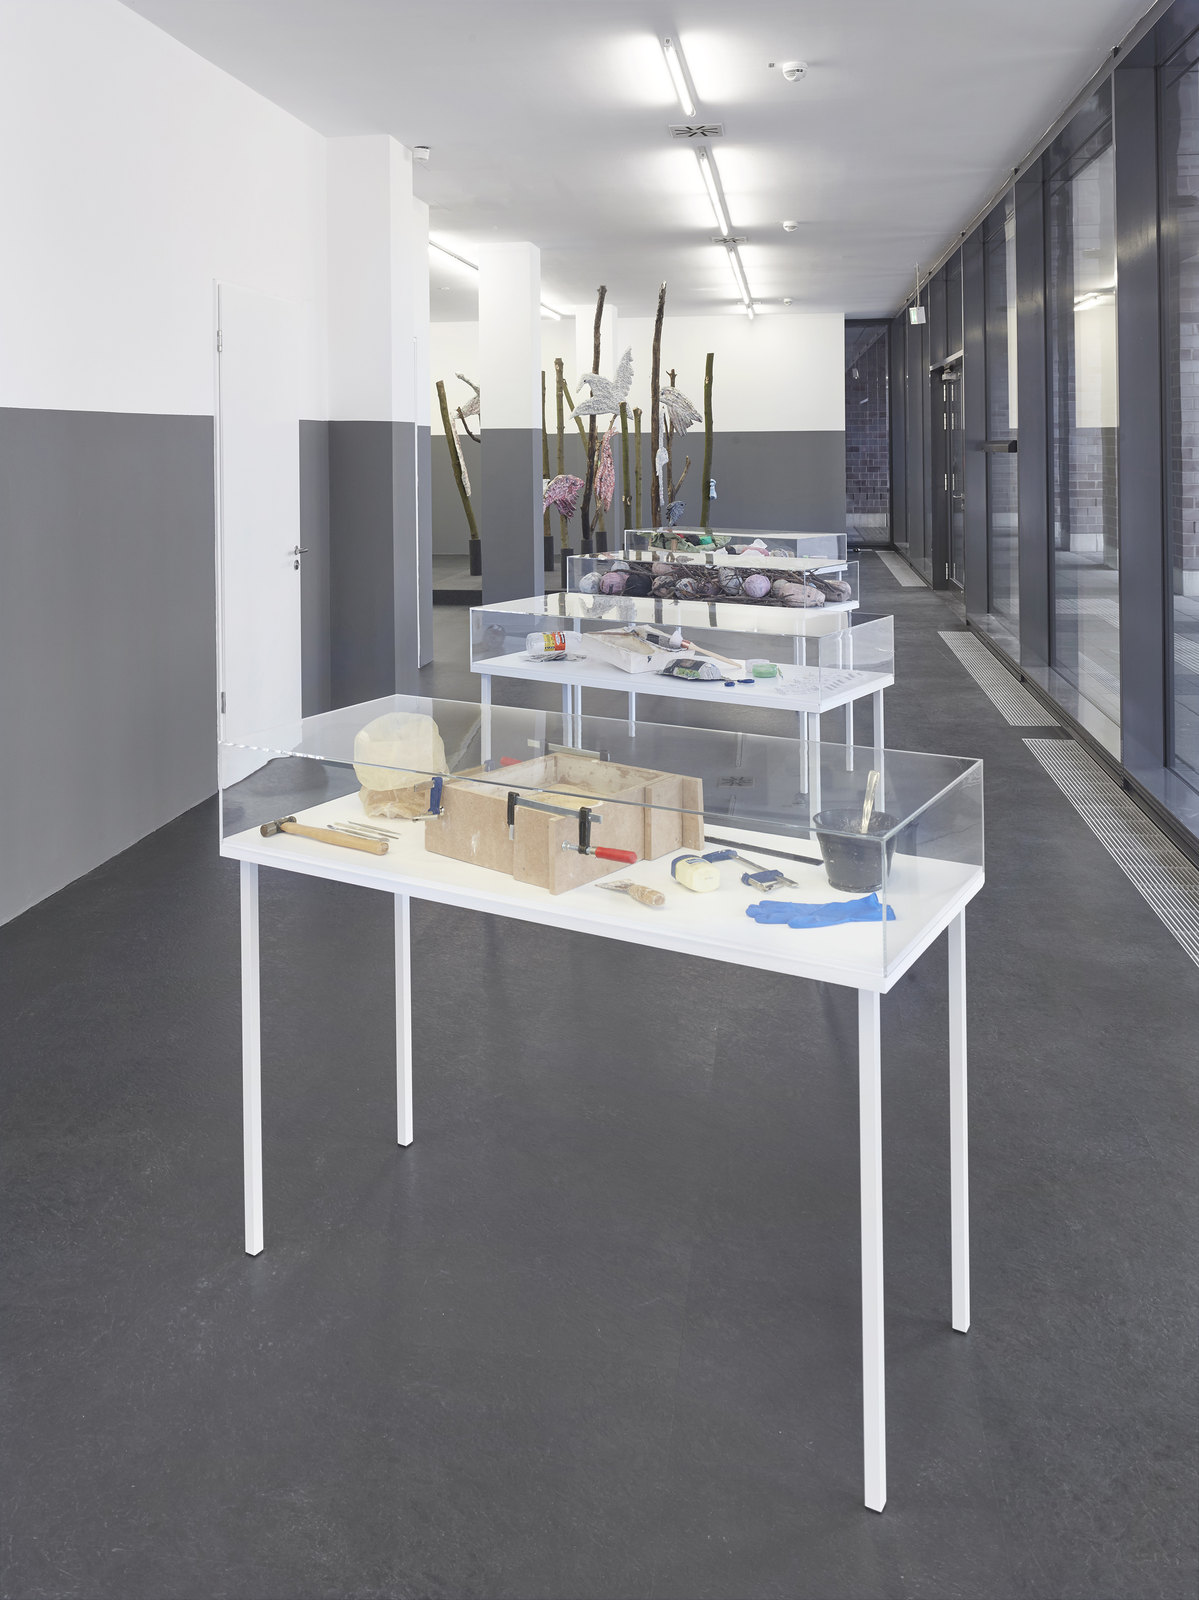 4_Shelly Nadashi NESTING BOX, Installation View_Dortmunder Kunstverein, Photo Simon Vogel